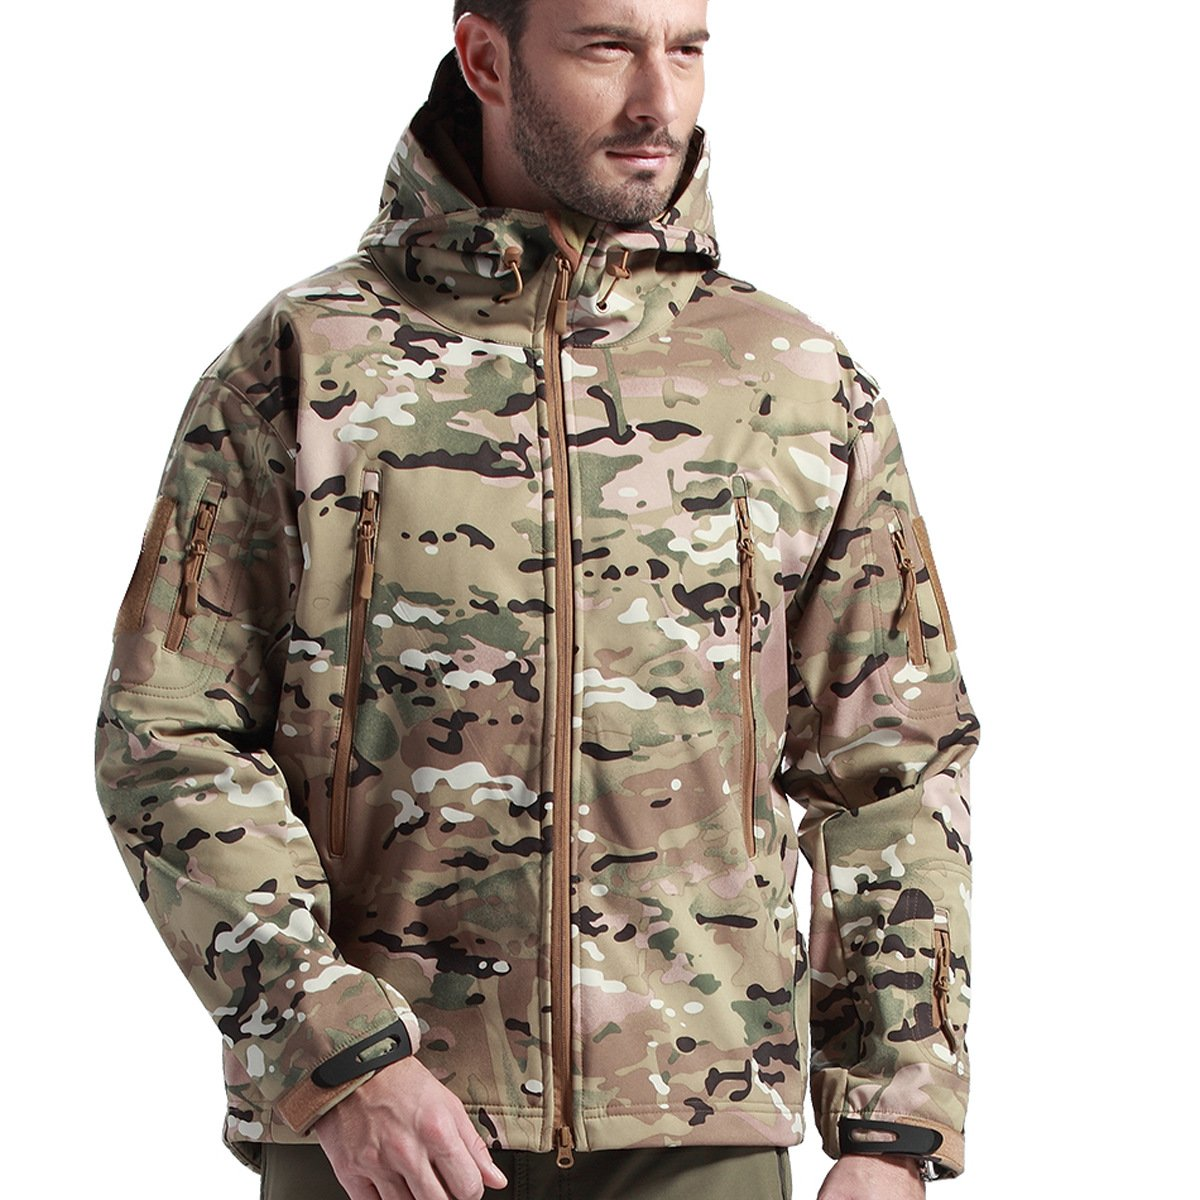 FREE SOLDIER Tactical Jacket Soft Shell Fleece Lined Water Repellent Coat Windproof Outwear Camouflage Jacket